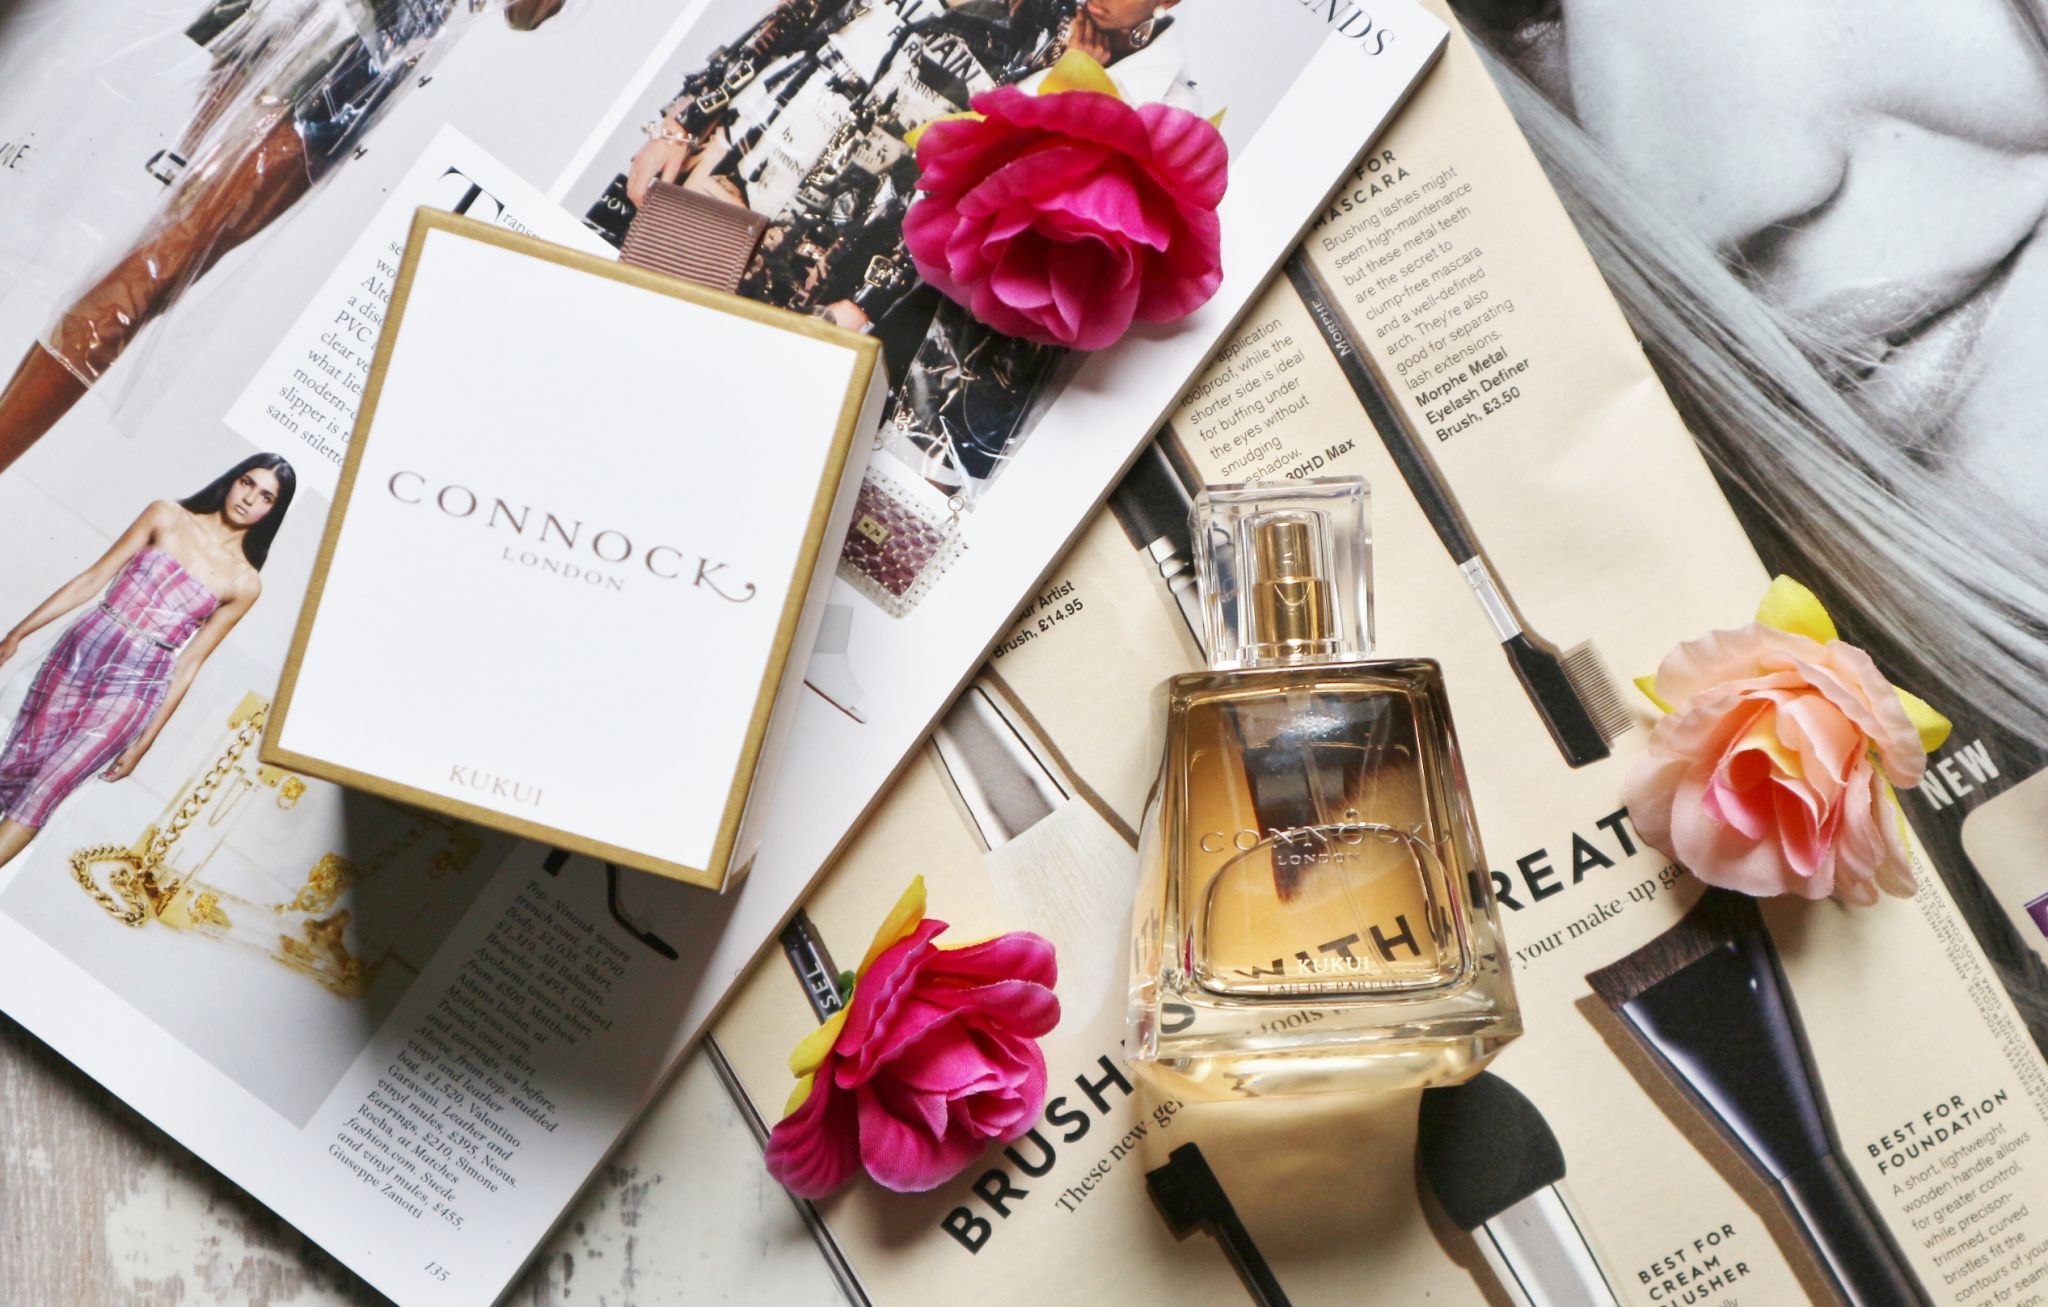 connock london kukui perfume